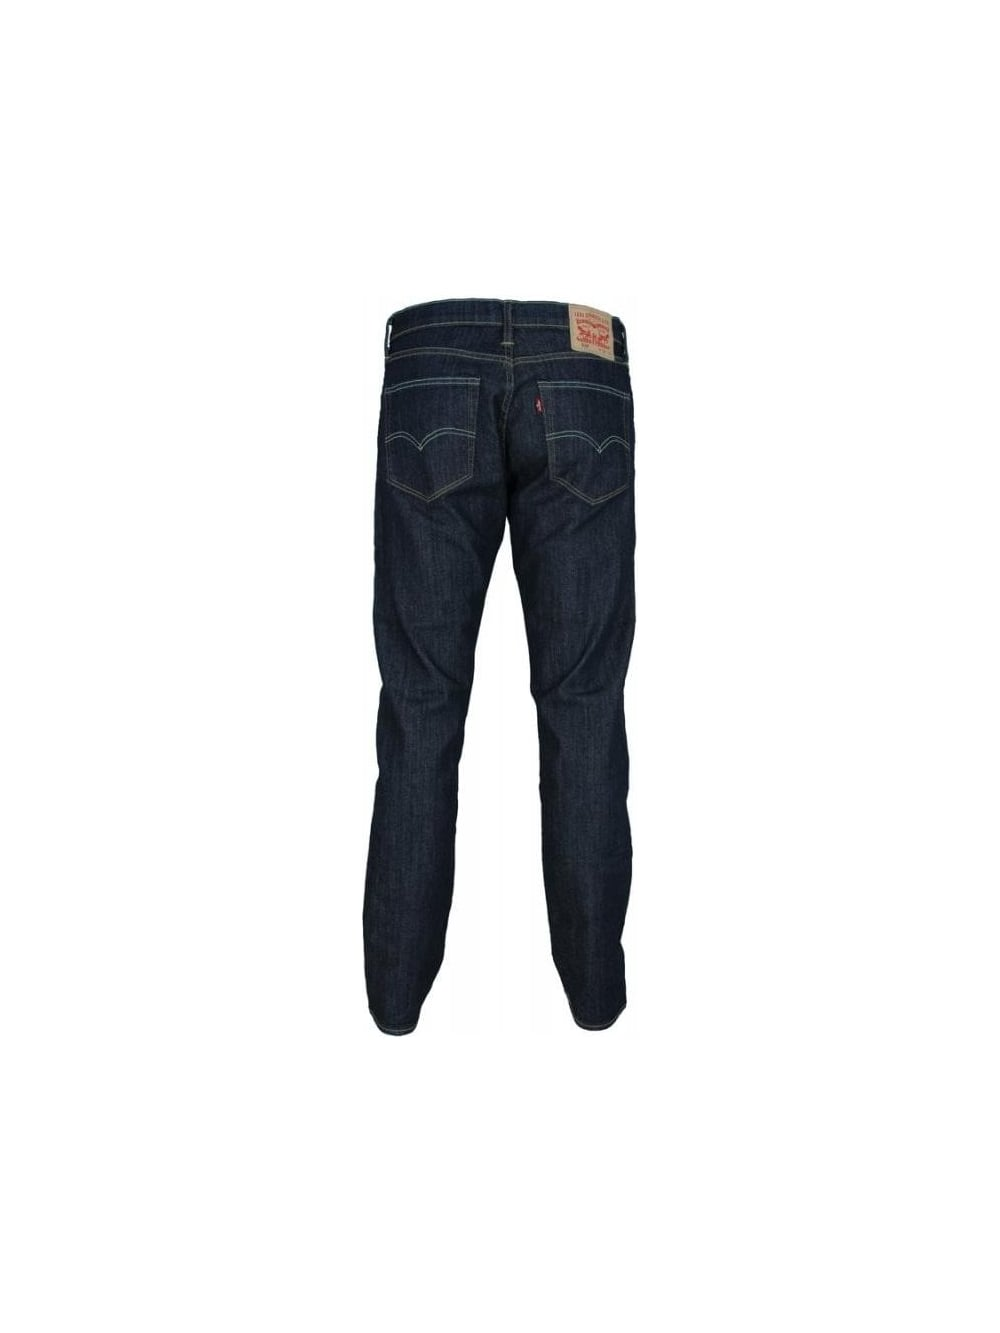 1a9a847c Levi's 508 Regular Taper Fit Jeans in Hammond Blue - Northern Threads